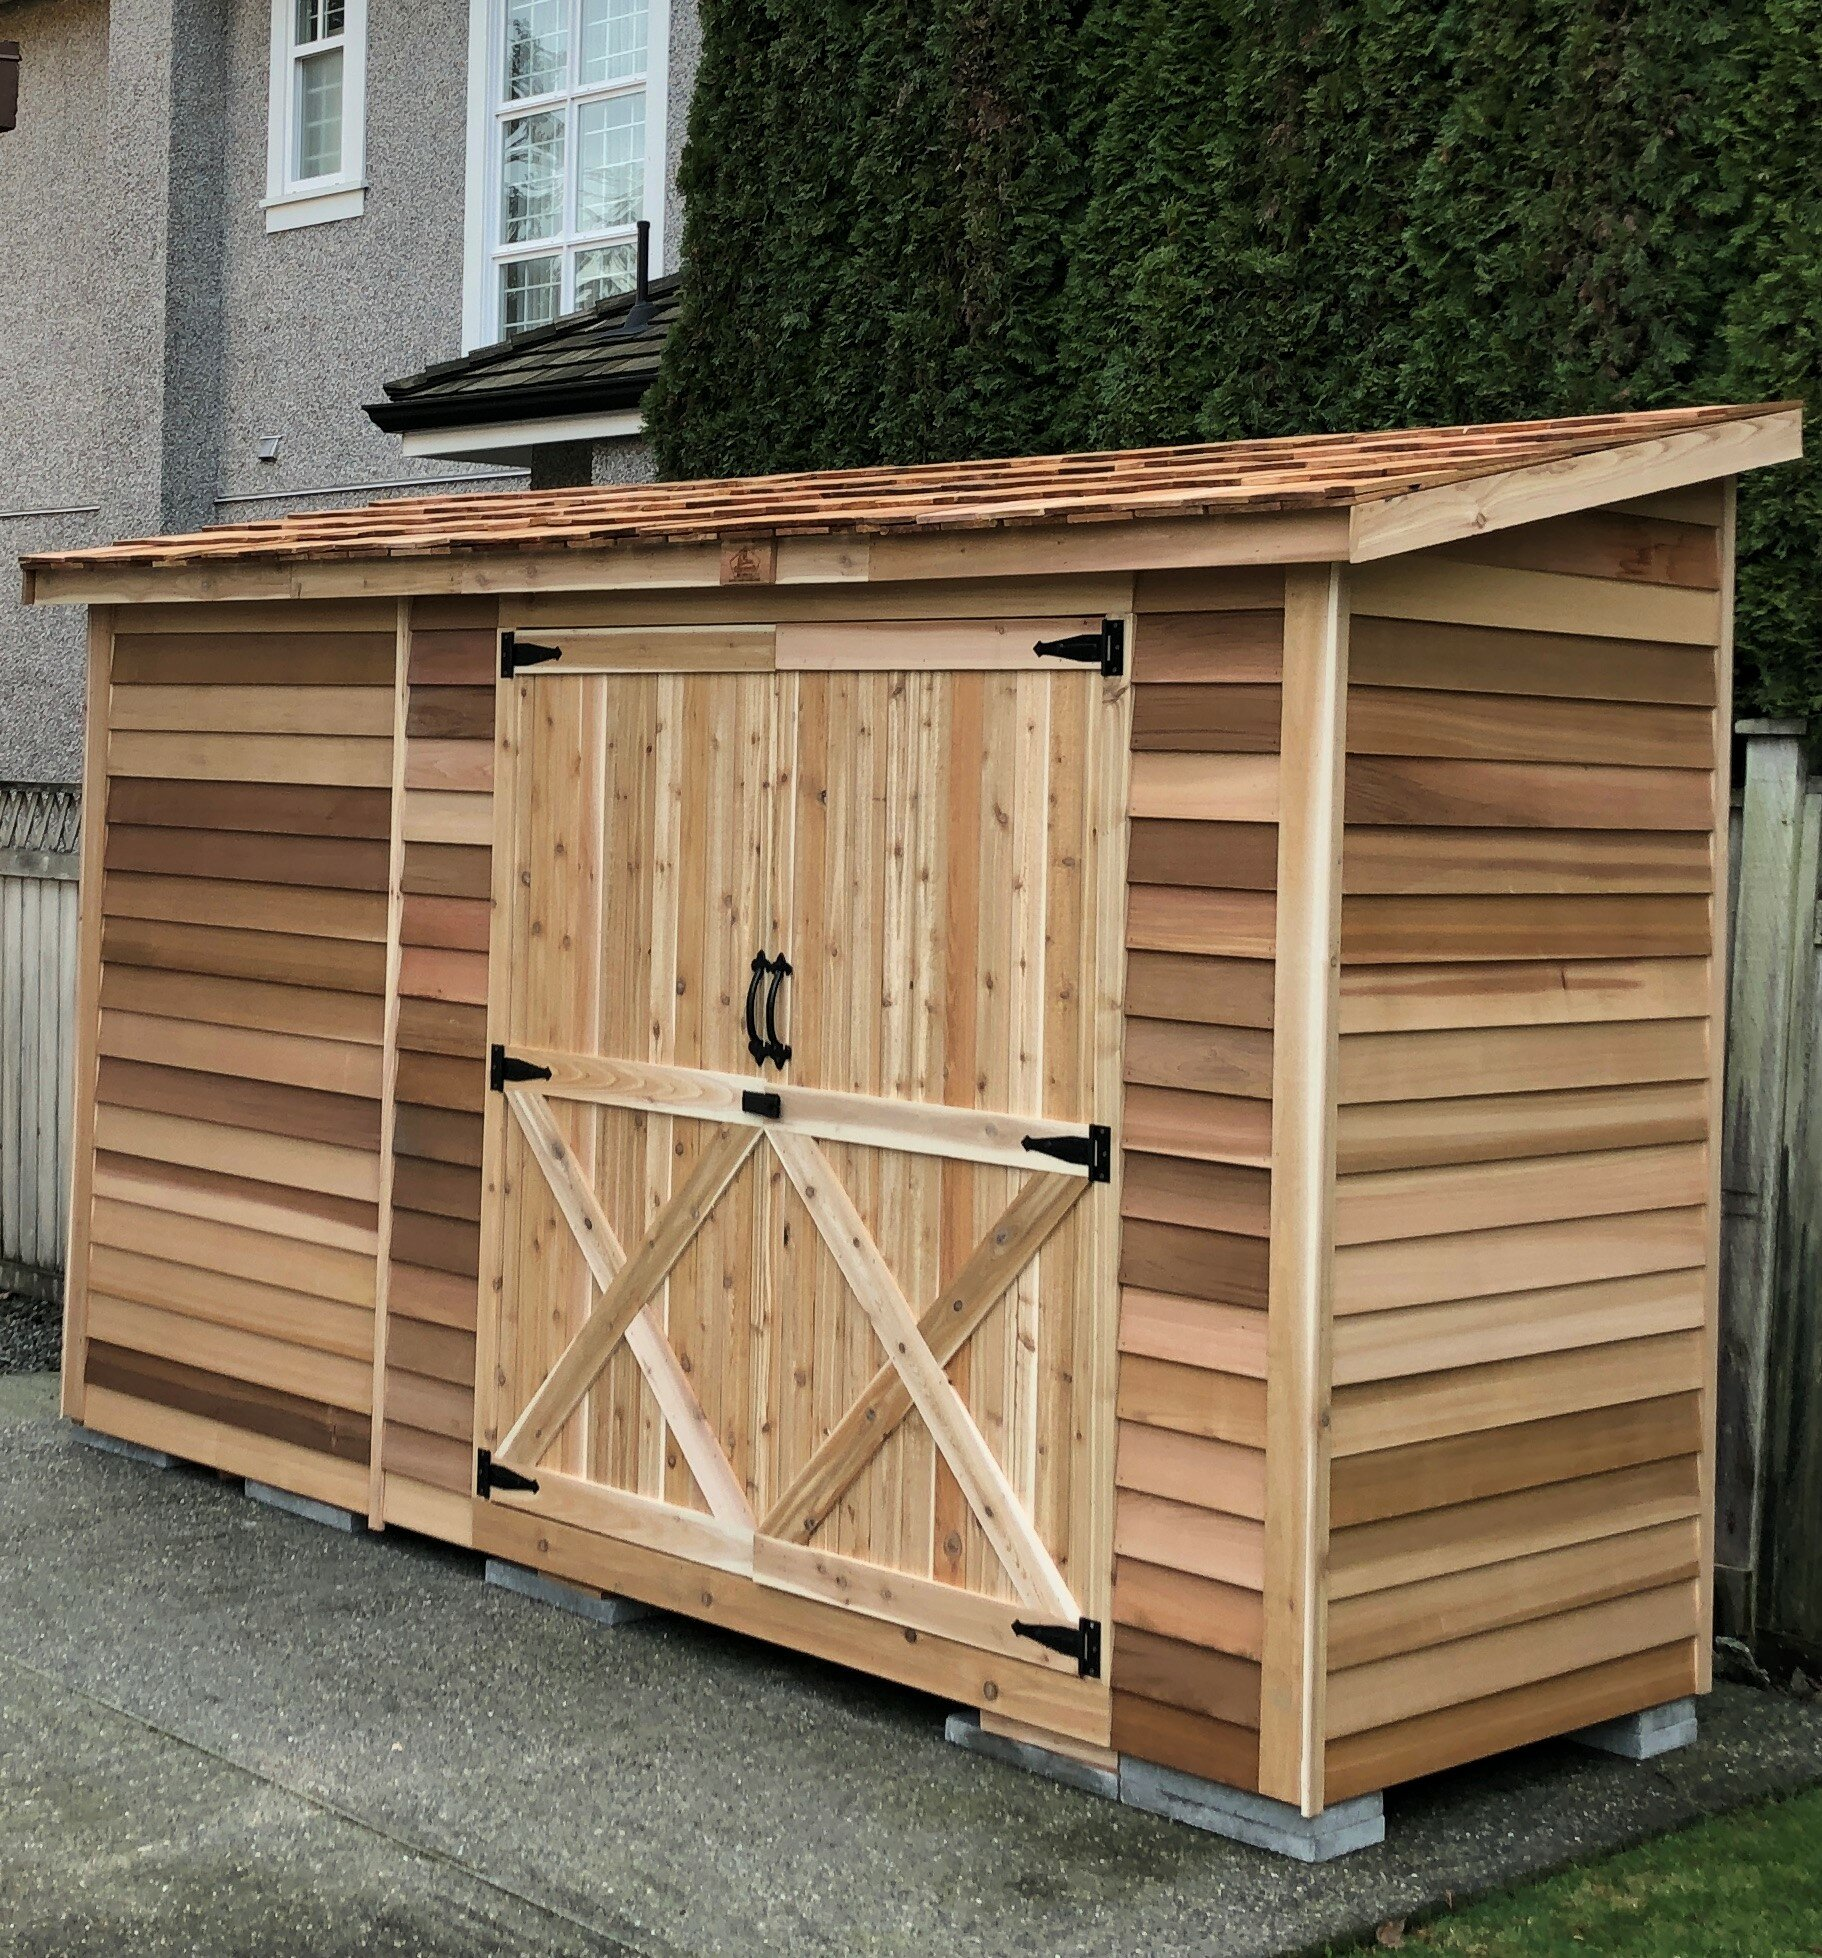 Bon Bayside 13 Ft. W X 5 Ft. D Solid Wood Lean To Storage Shed